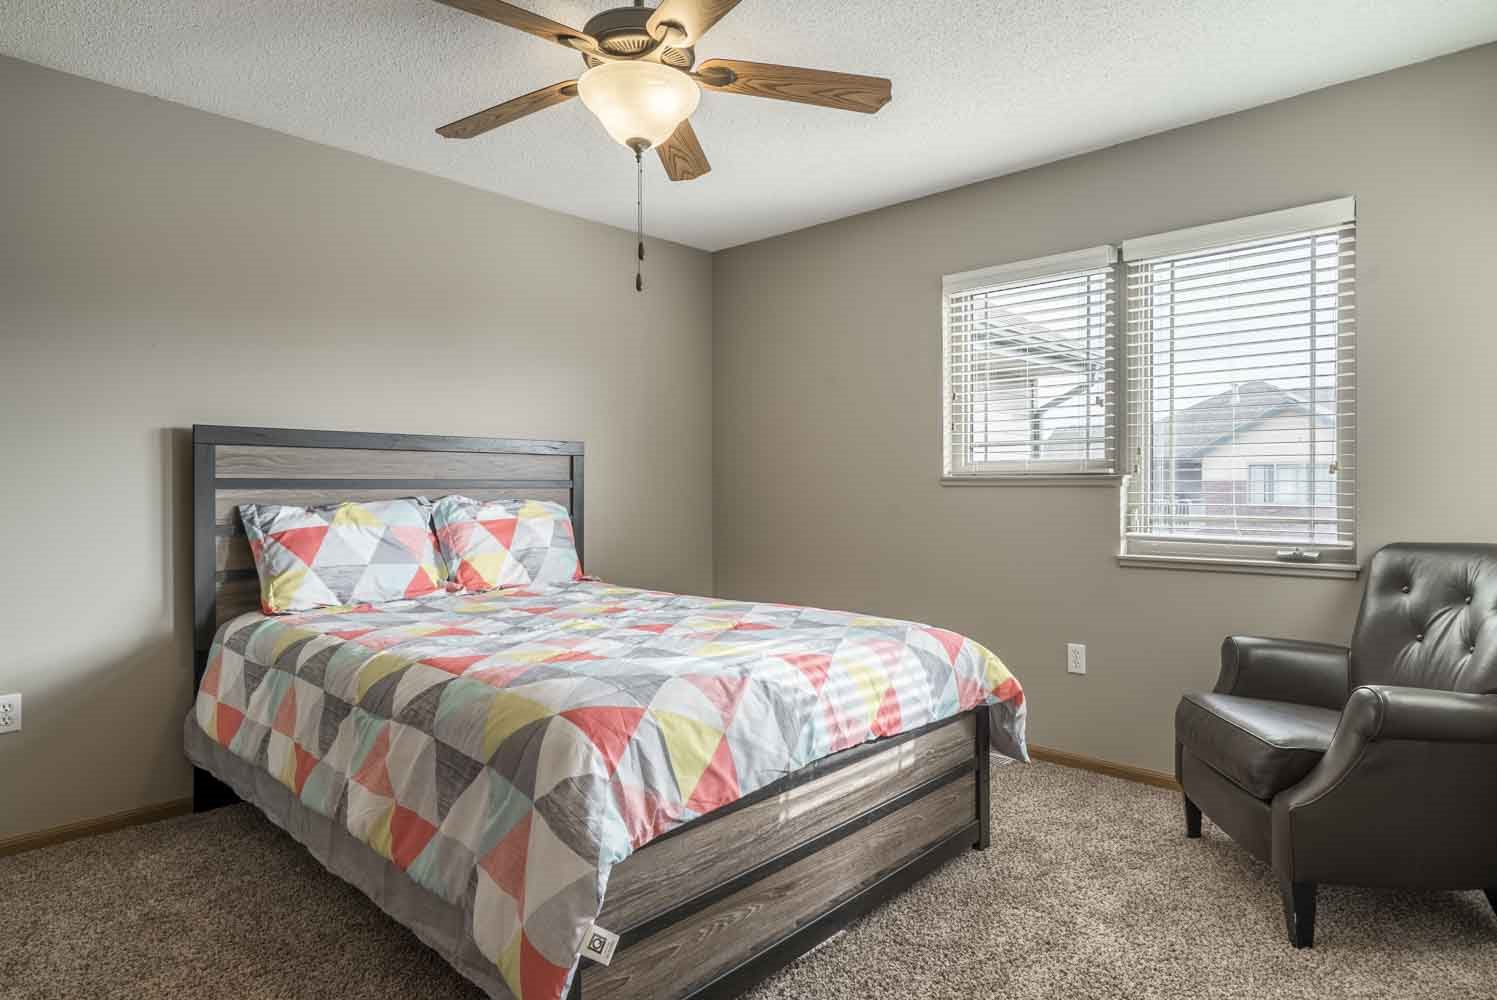 Second bedroom with ceiling fan at Southwind Villas in southwest Omaha in La Vista, NE, 68128